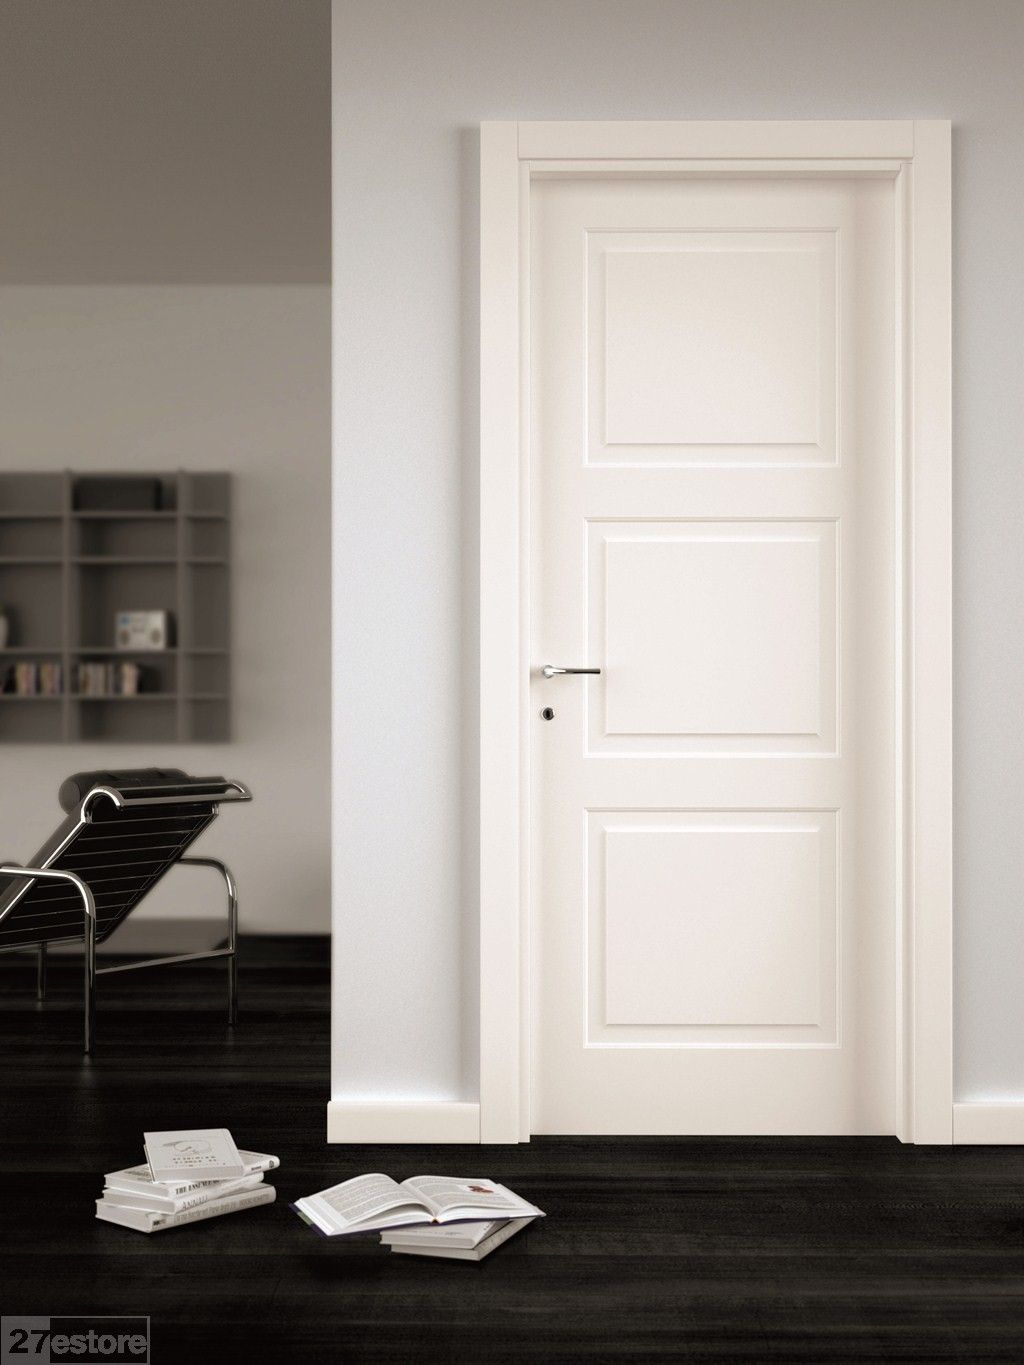 Definitivamente es la puerta ideal para nuestra casa me encanta 3 panel classic interior door available in white or ivory finish view door specification pdf format looking for an 8 ft planetlyrics Images